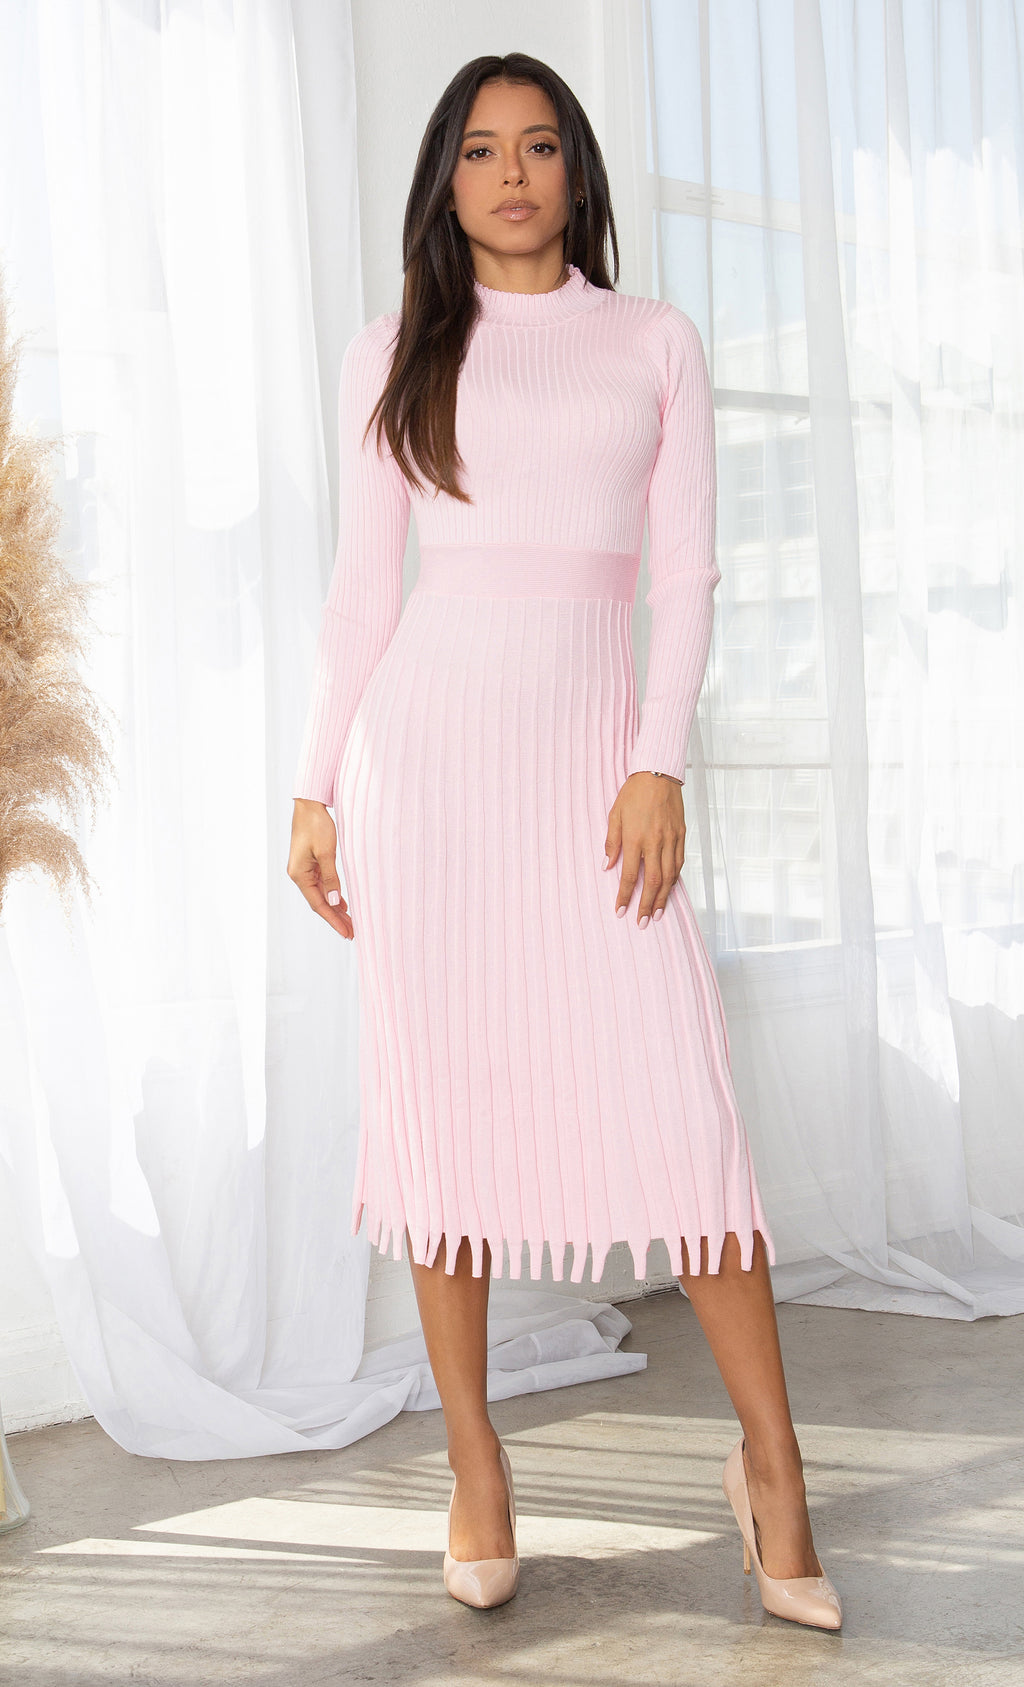 All You Want Light Pink Pleated Crew Ribbed Round Neck Modest Long Sleeve Stretch Knit Body Con Sweater Midi Dress